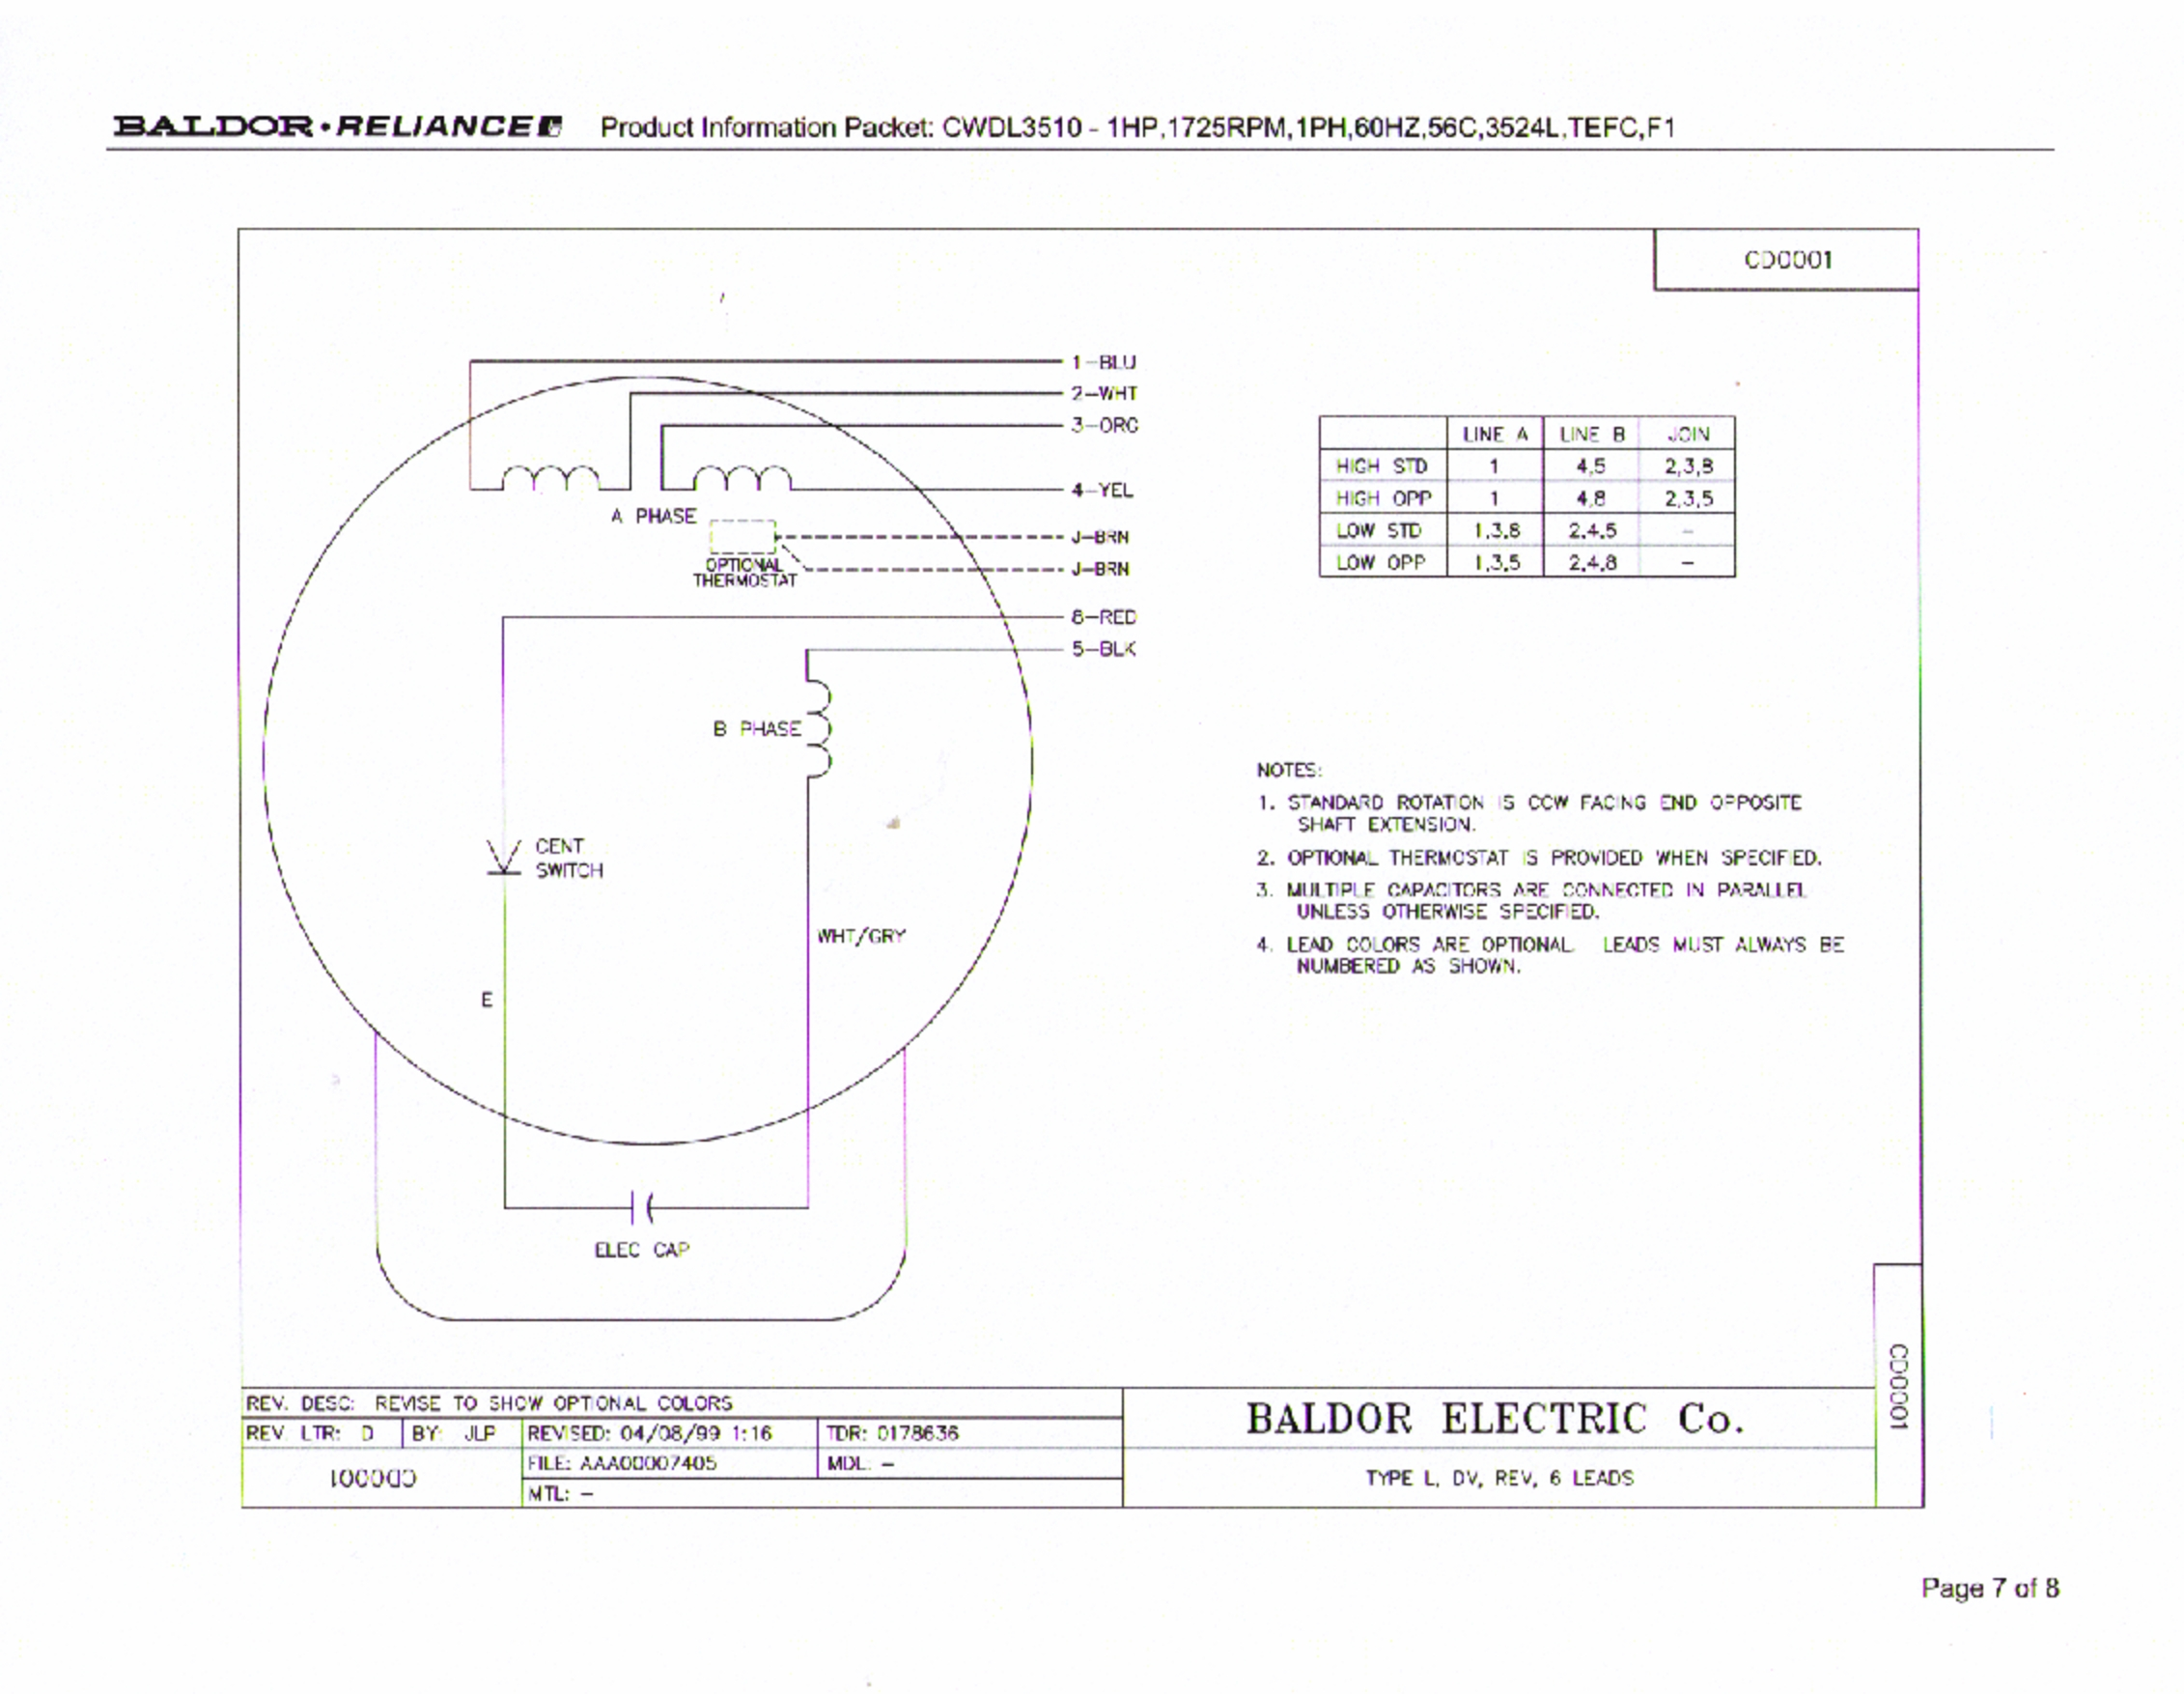 Baldor Motor Wiring Diagram - Wiring Diagram Can on hard start capacitor wiring diagram, baldor grinder wiring-diagram, 5 wire capacitor wiring diagram, motor run capacitor wiring diagram, ceiling fan capacitor wiring diagram, car audio capacitor wiring diagram, baldor wiring-diagram 56c 115 230, vfd control diagram, baldor elect diagram, a.o. smith capacitor wiring diagram, weg capacitor wiring diagram, ge electric motor diagram, baldor capacitor cover, baldor motor diagram, marathon capacitor wiring diagram, ac motor capacitor wiring diagram, baldor connection diagram,